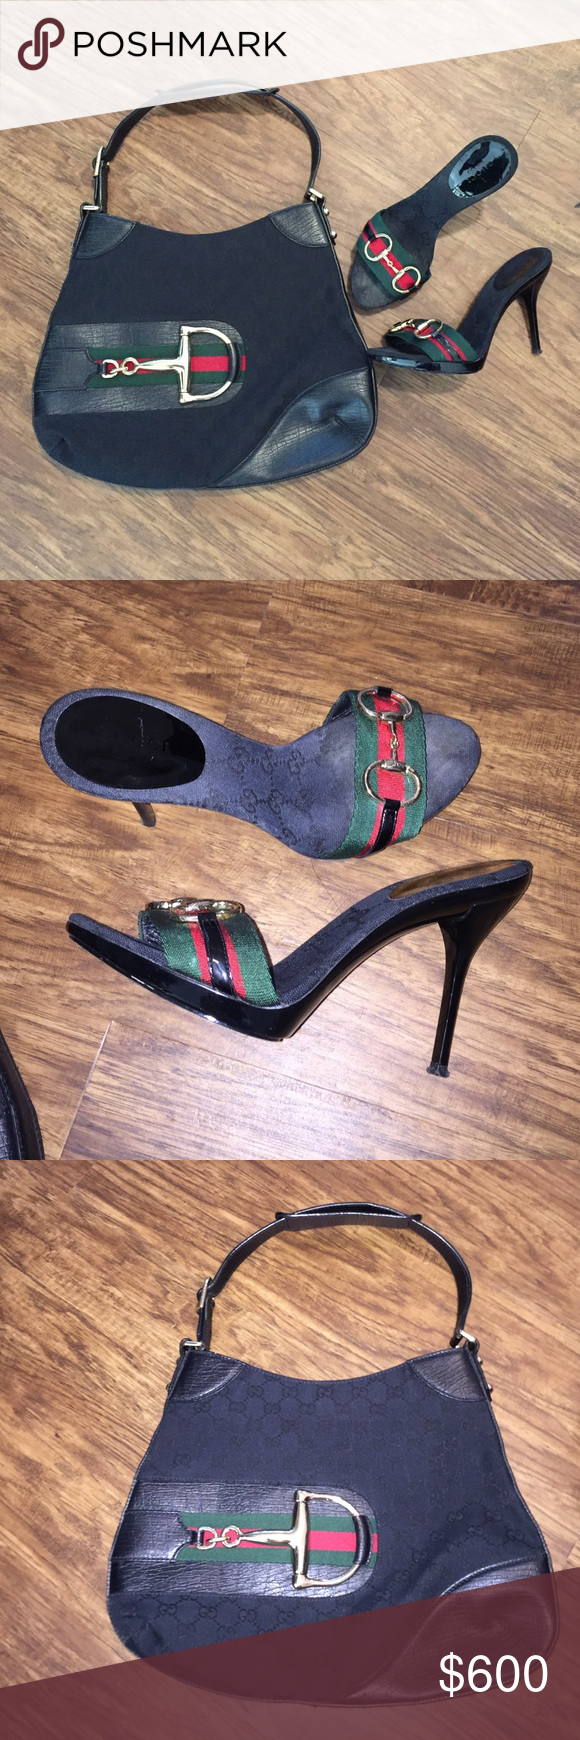 Authentic Gucci Bag and Shoe Set Gently used purse and very loved slides. Authentic with dust bags. Shoes need heel tap and cleaning to be back in perfect shape!! Medium sized shoulder bag. Gold hardware. Gucci Shoes Heels